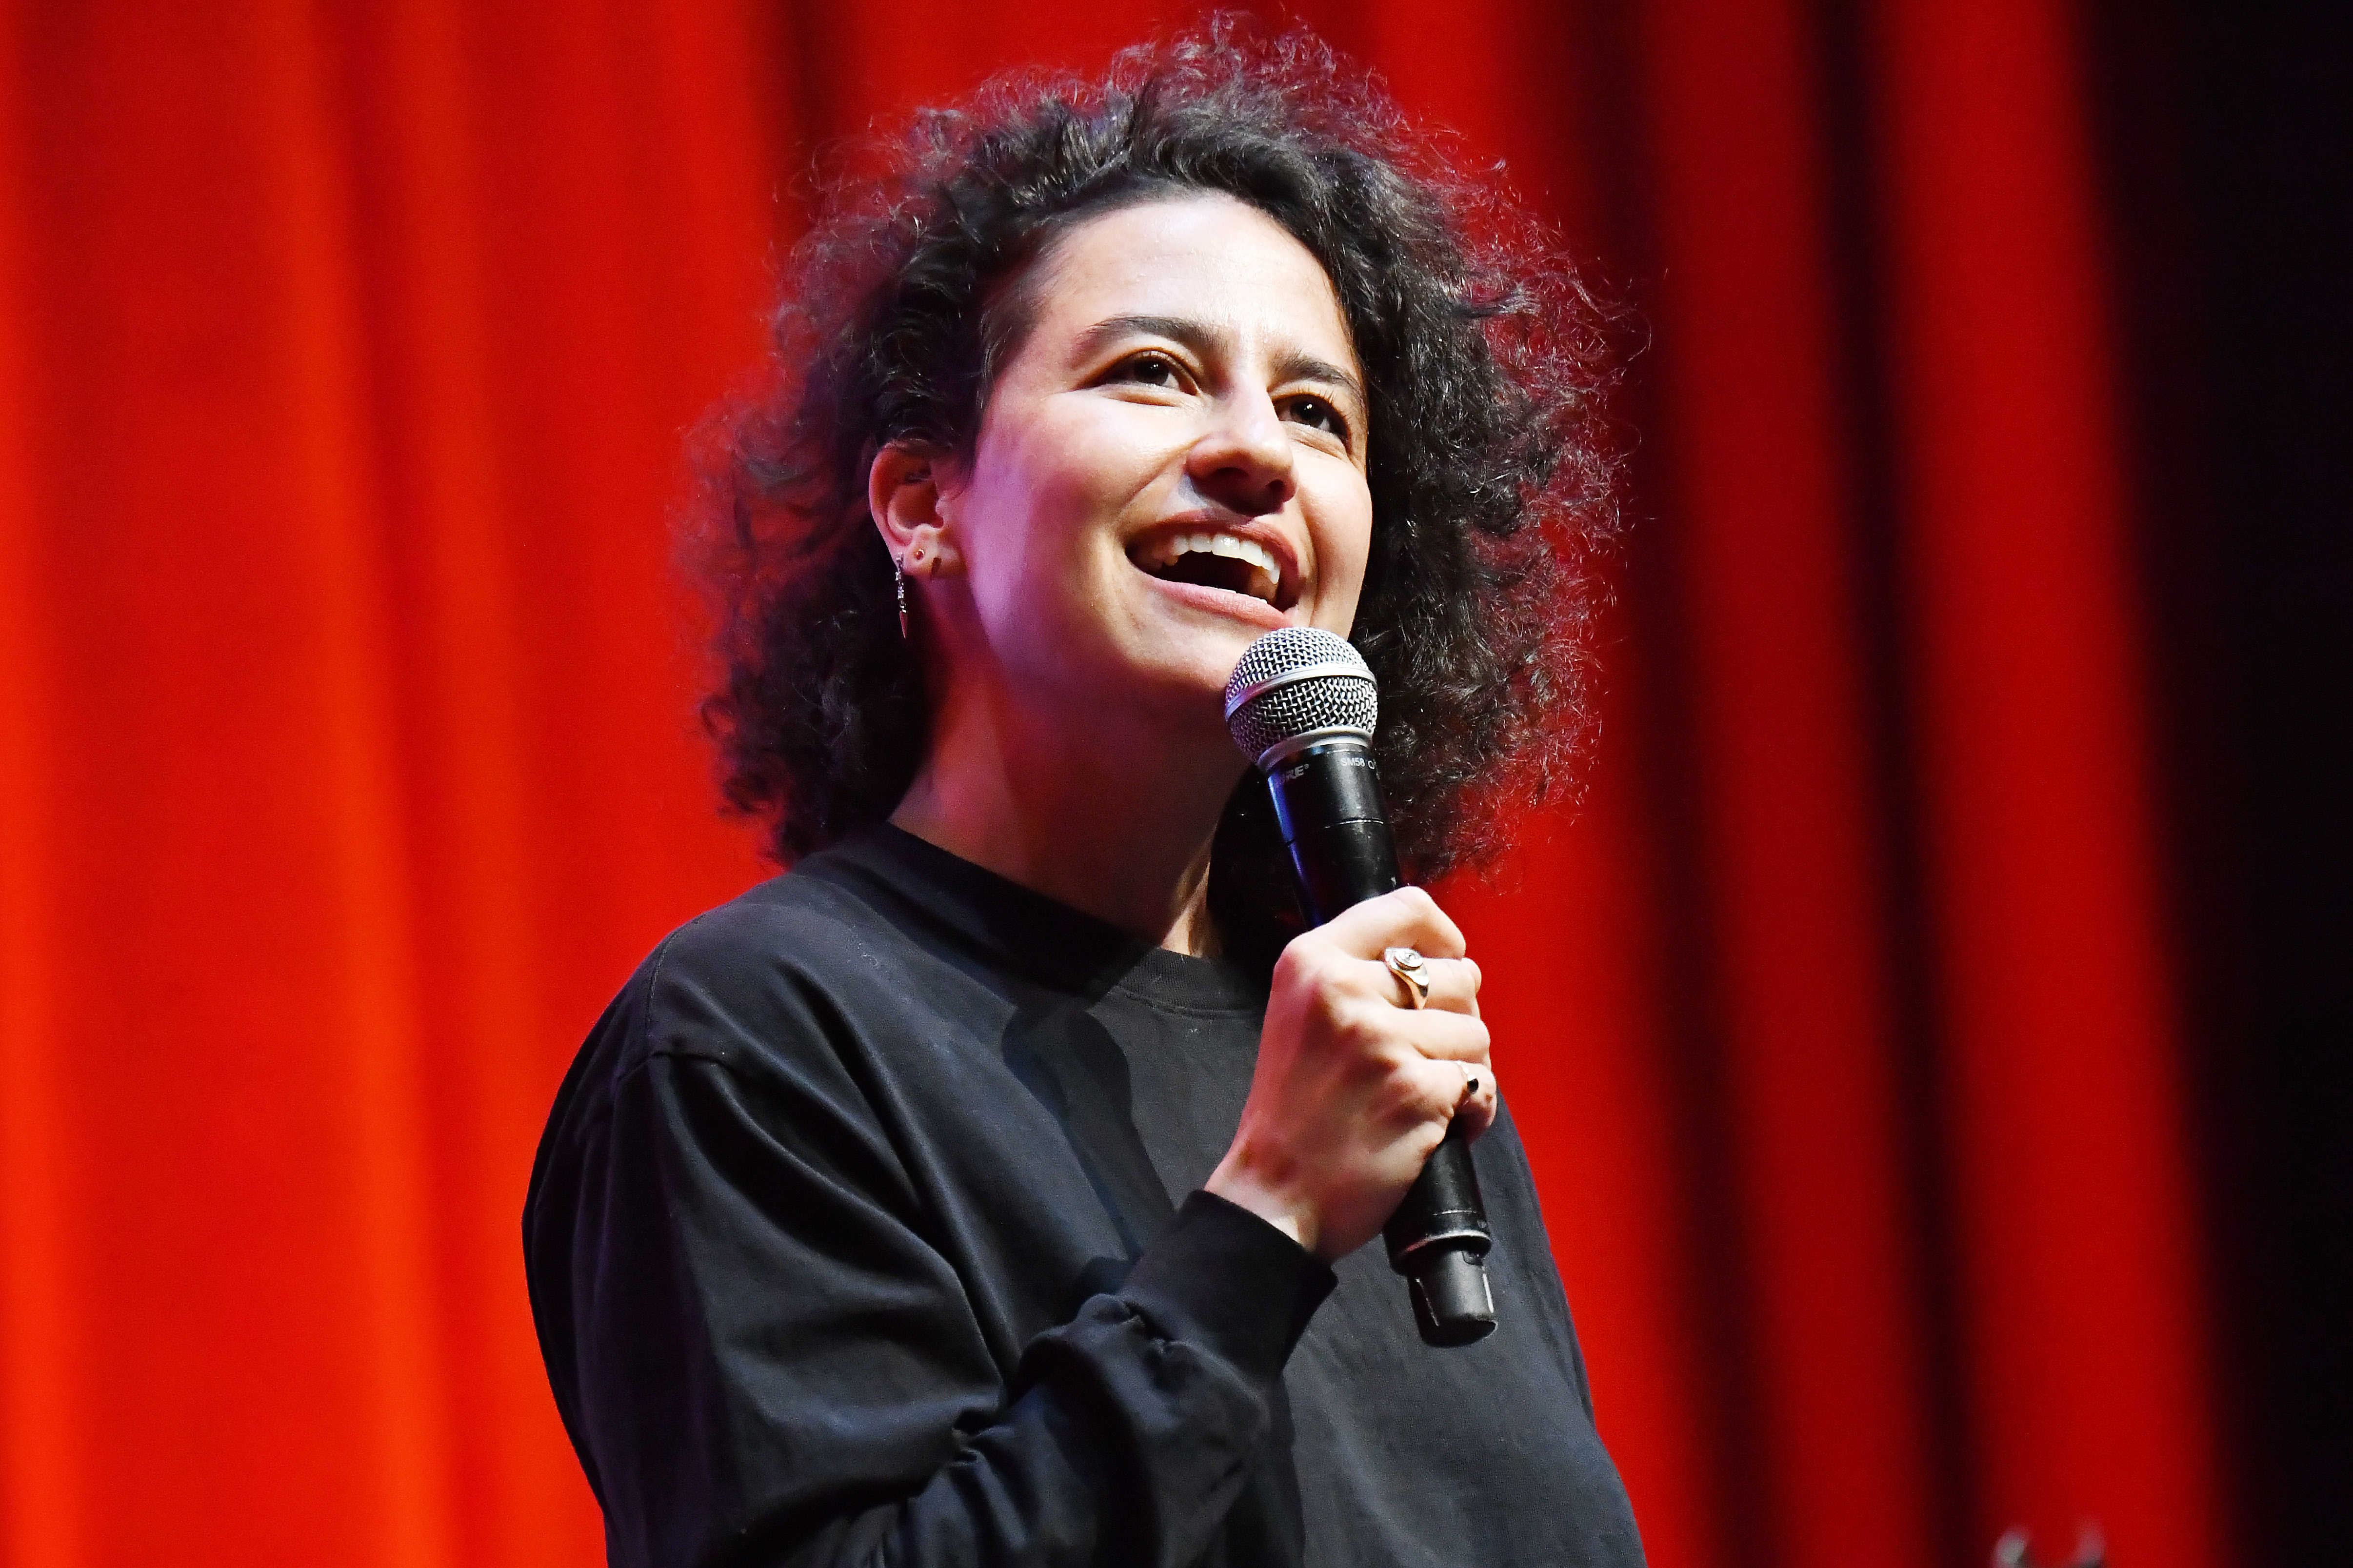 Ilana Glazer at the 2019 Clusterfest on June 21, 2019 in San Francisco, California.